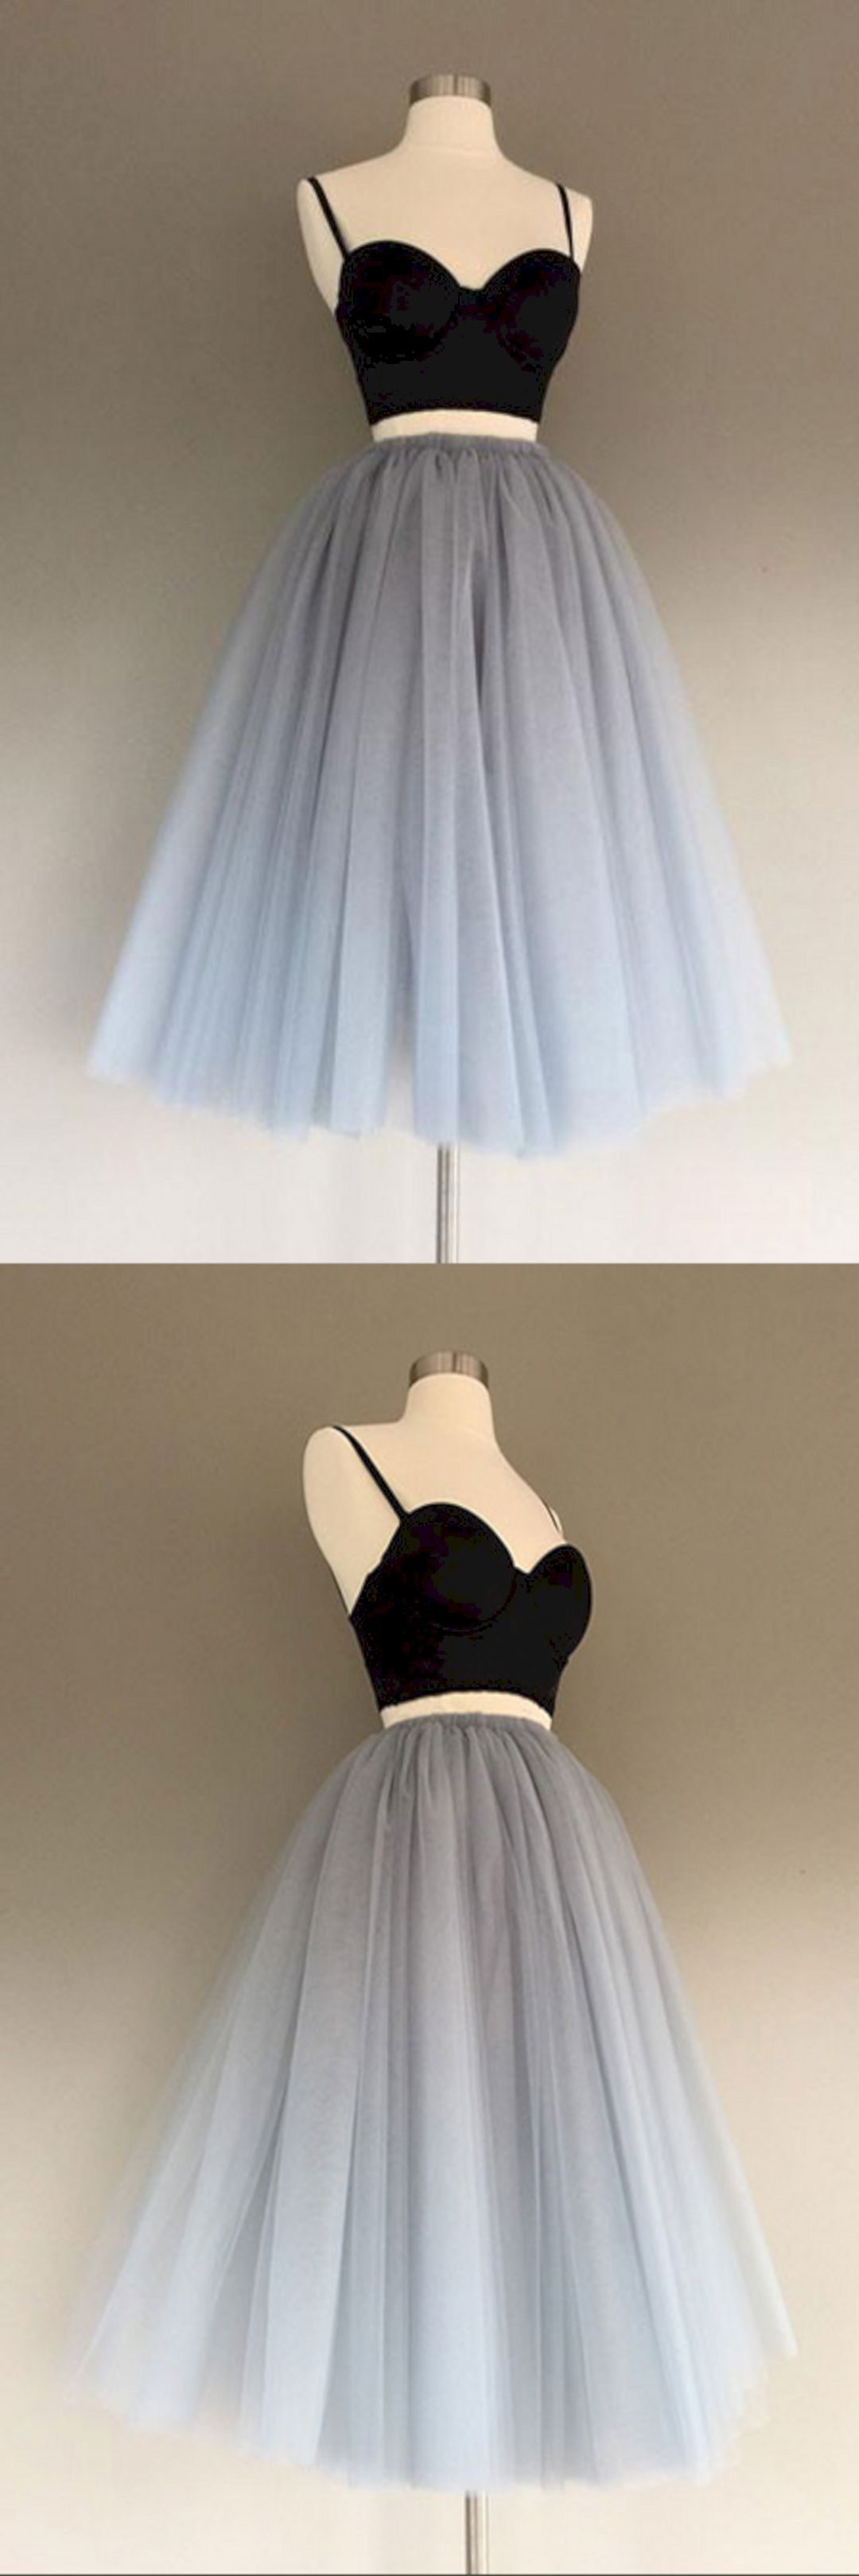 Pin by dellia phut on dresses in pinterest dresses prom